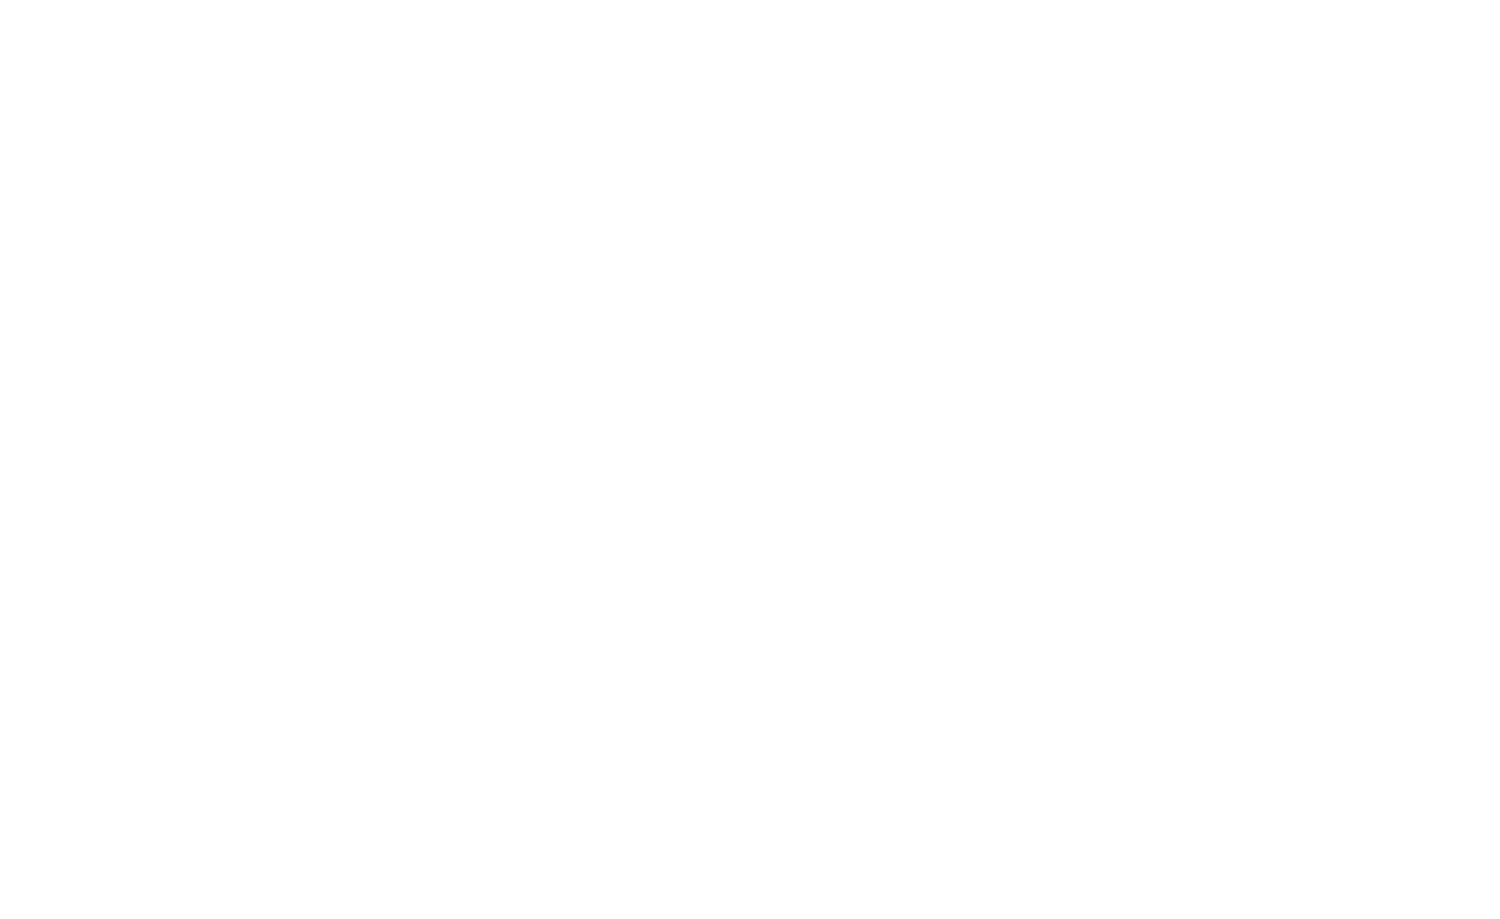 Koi Pond Strategy